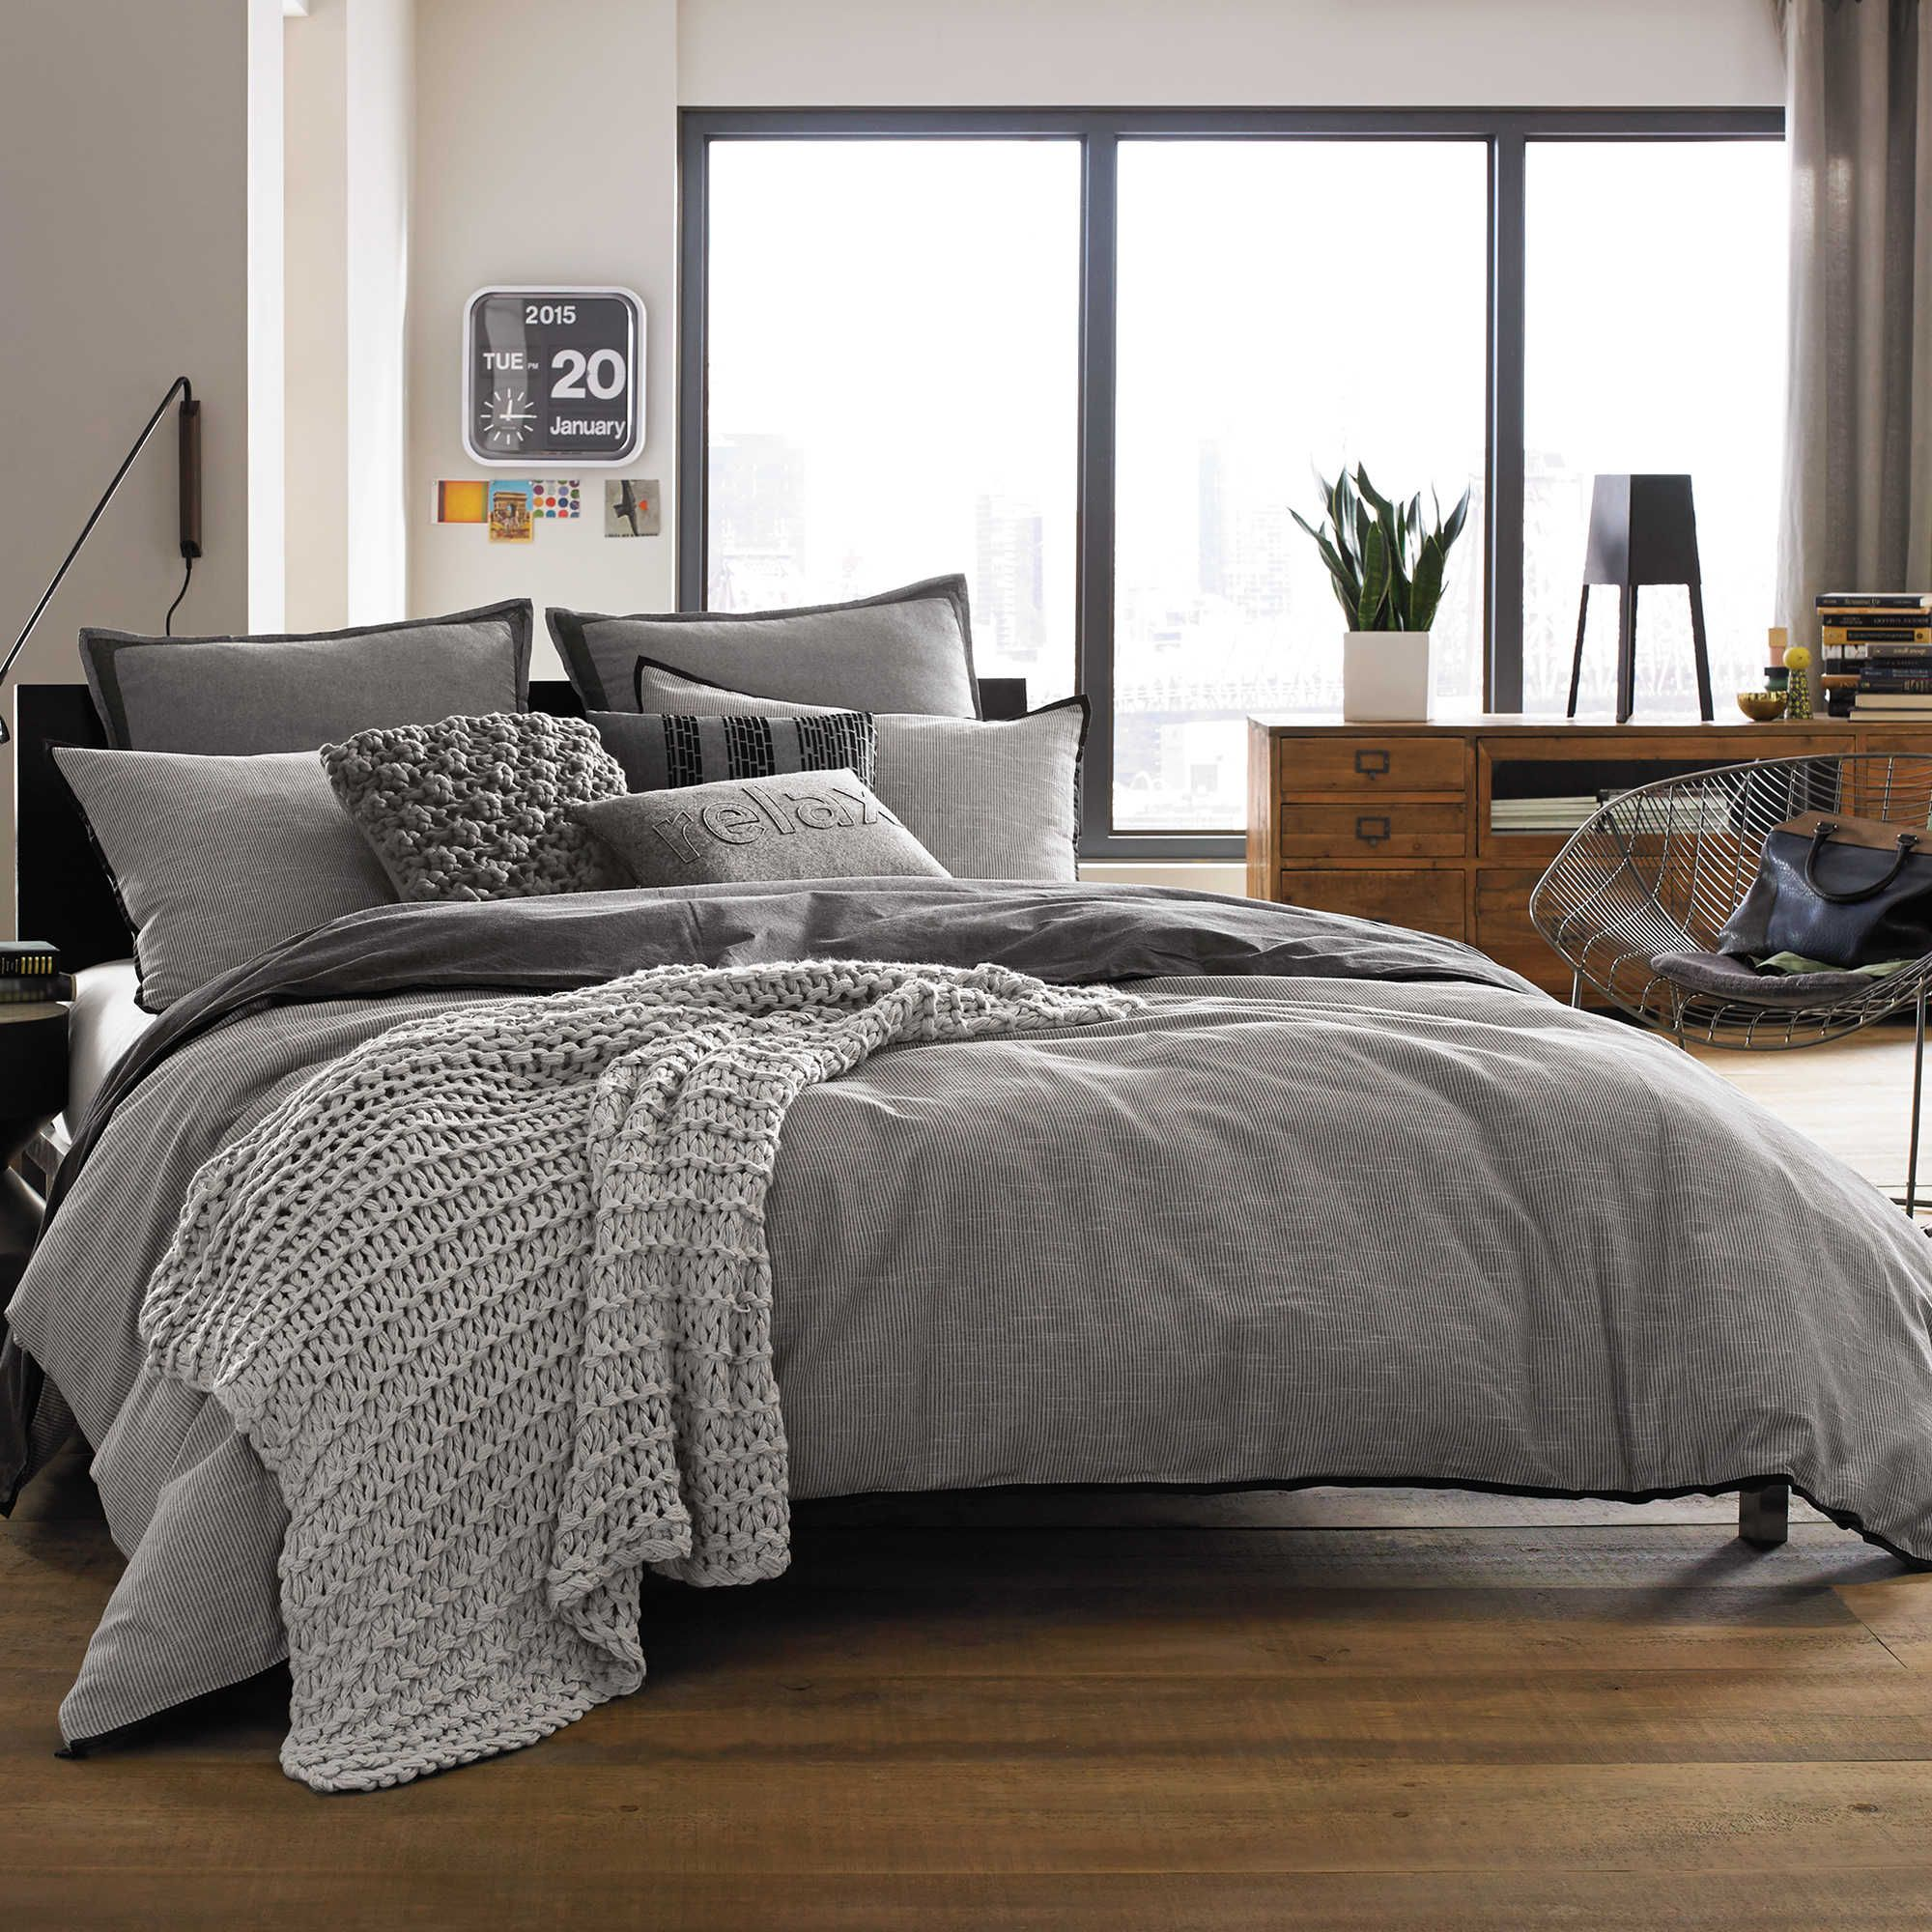 kenneth cole reaction home oxford duvet cover in grey stripe